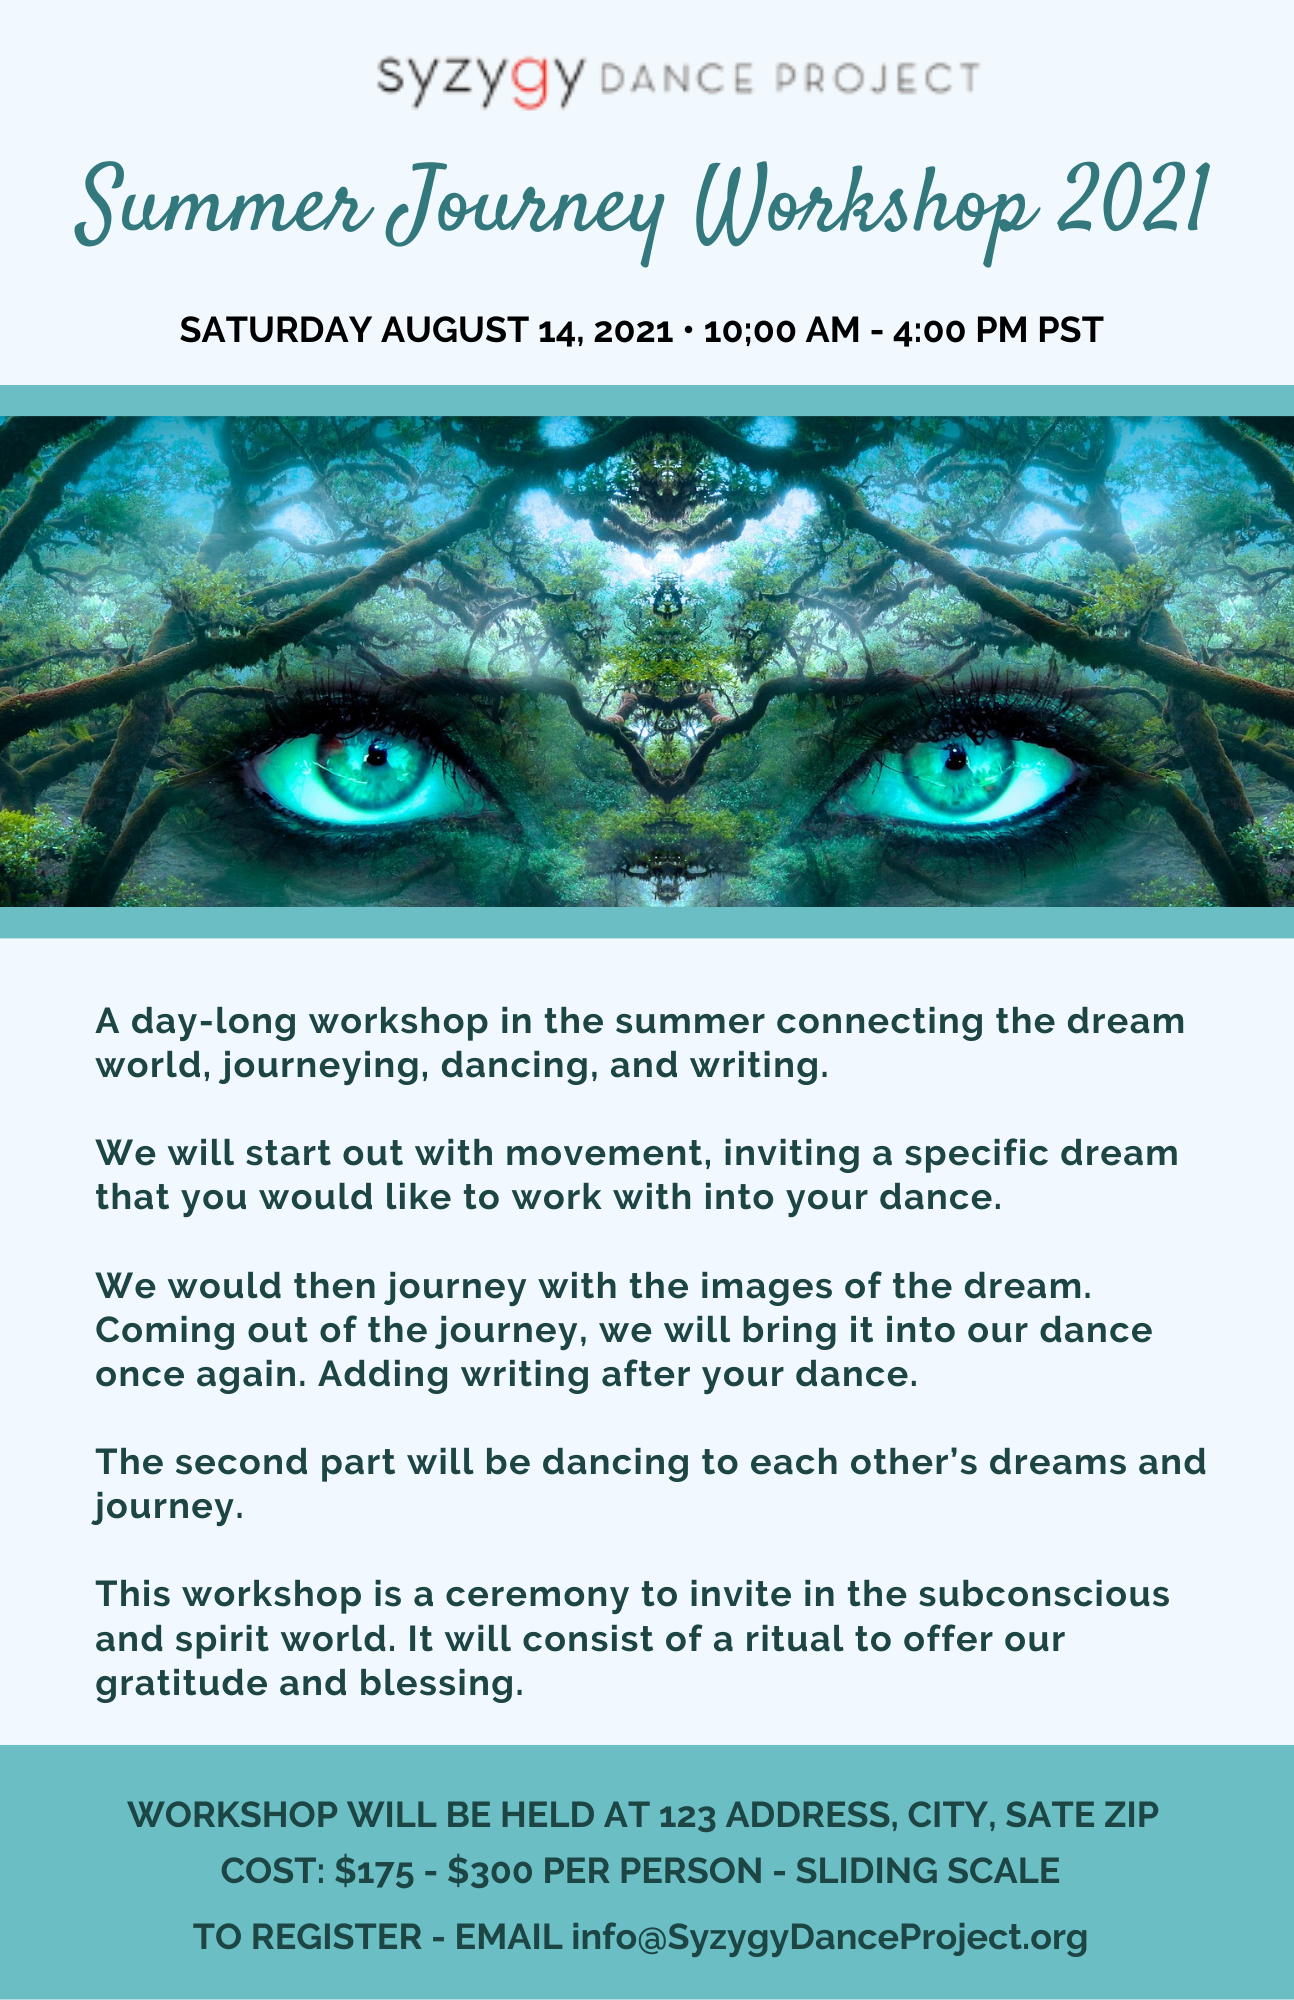 Journey into the unknown workshop information and registration